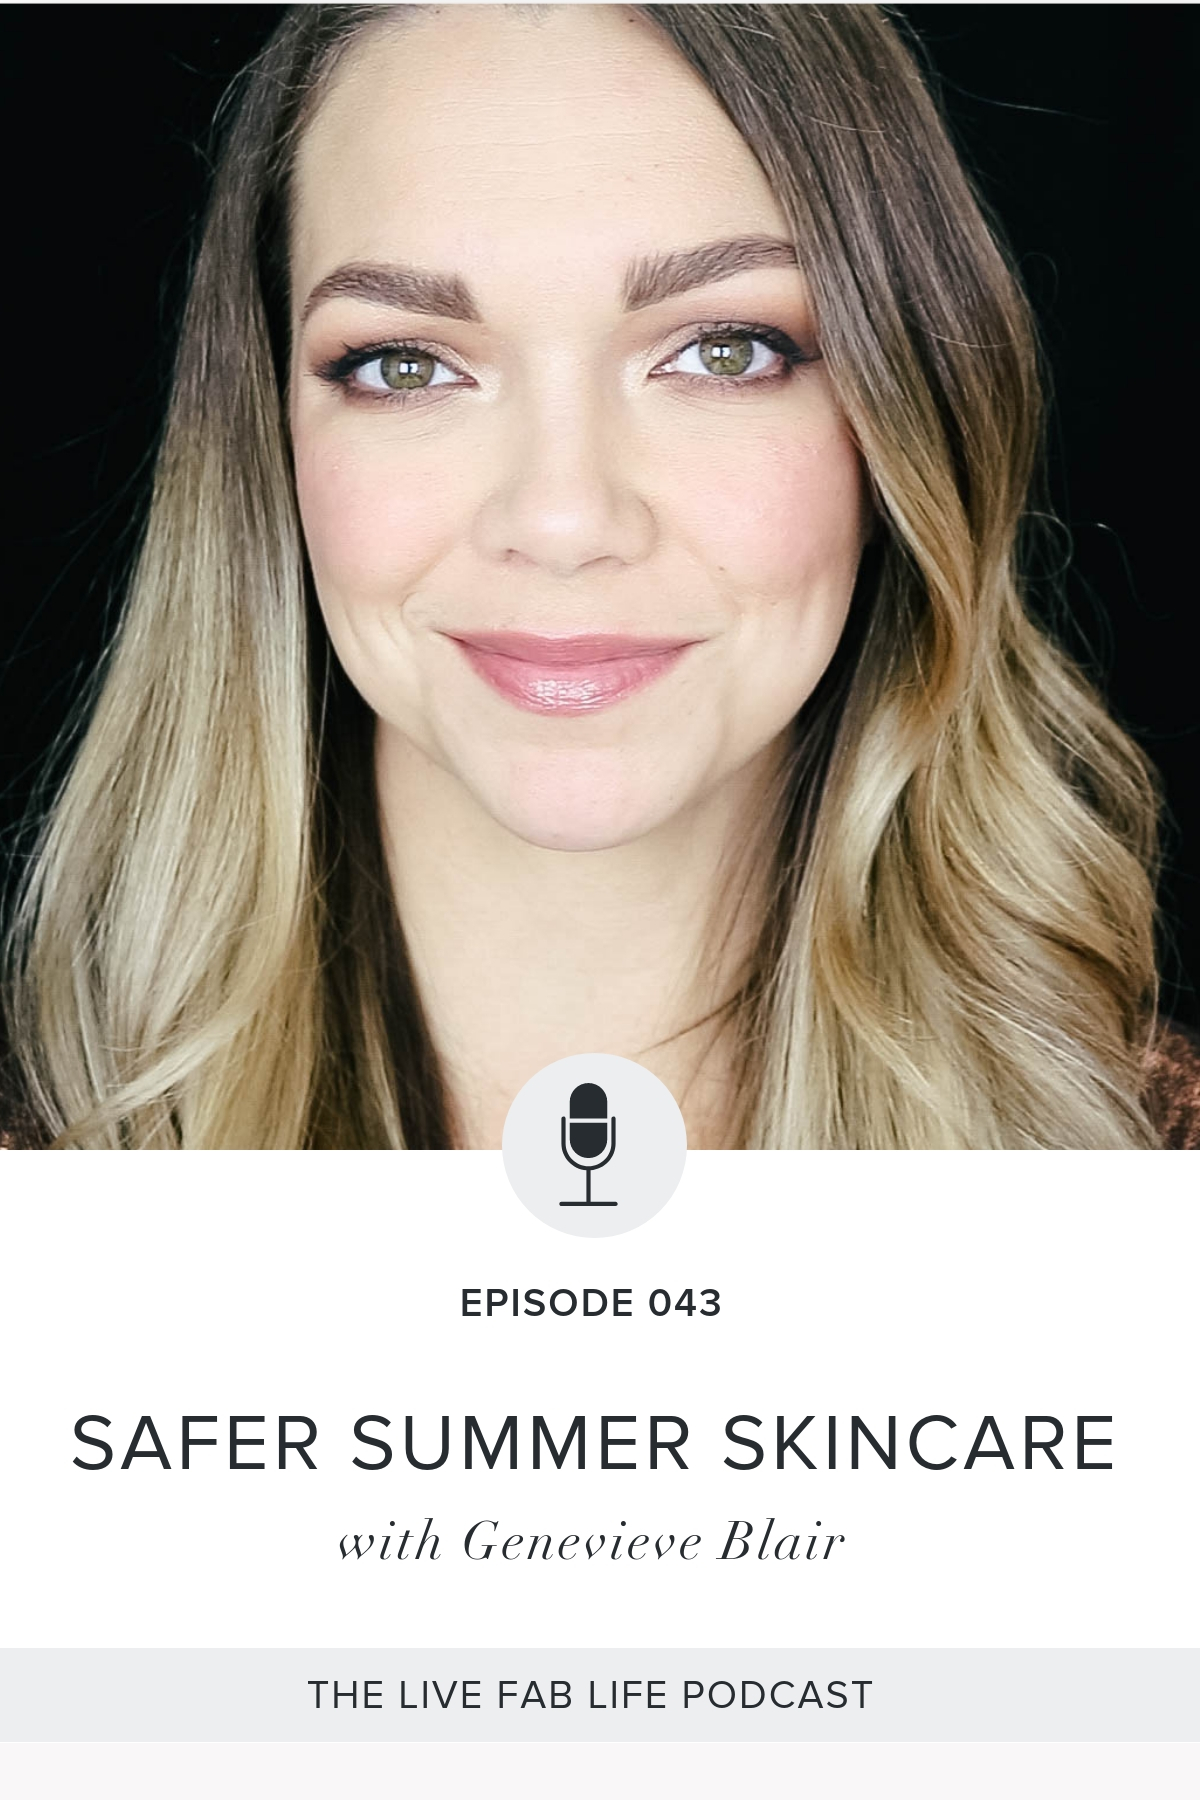 Episode 043: Safer Summer Skincare with Genevieve Blair